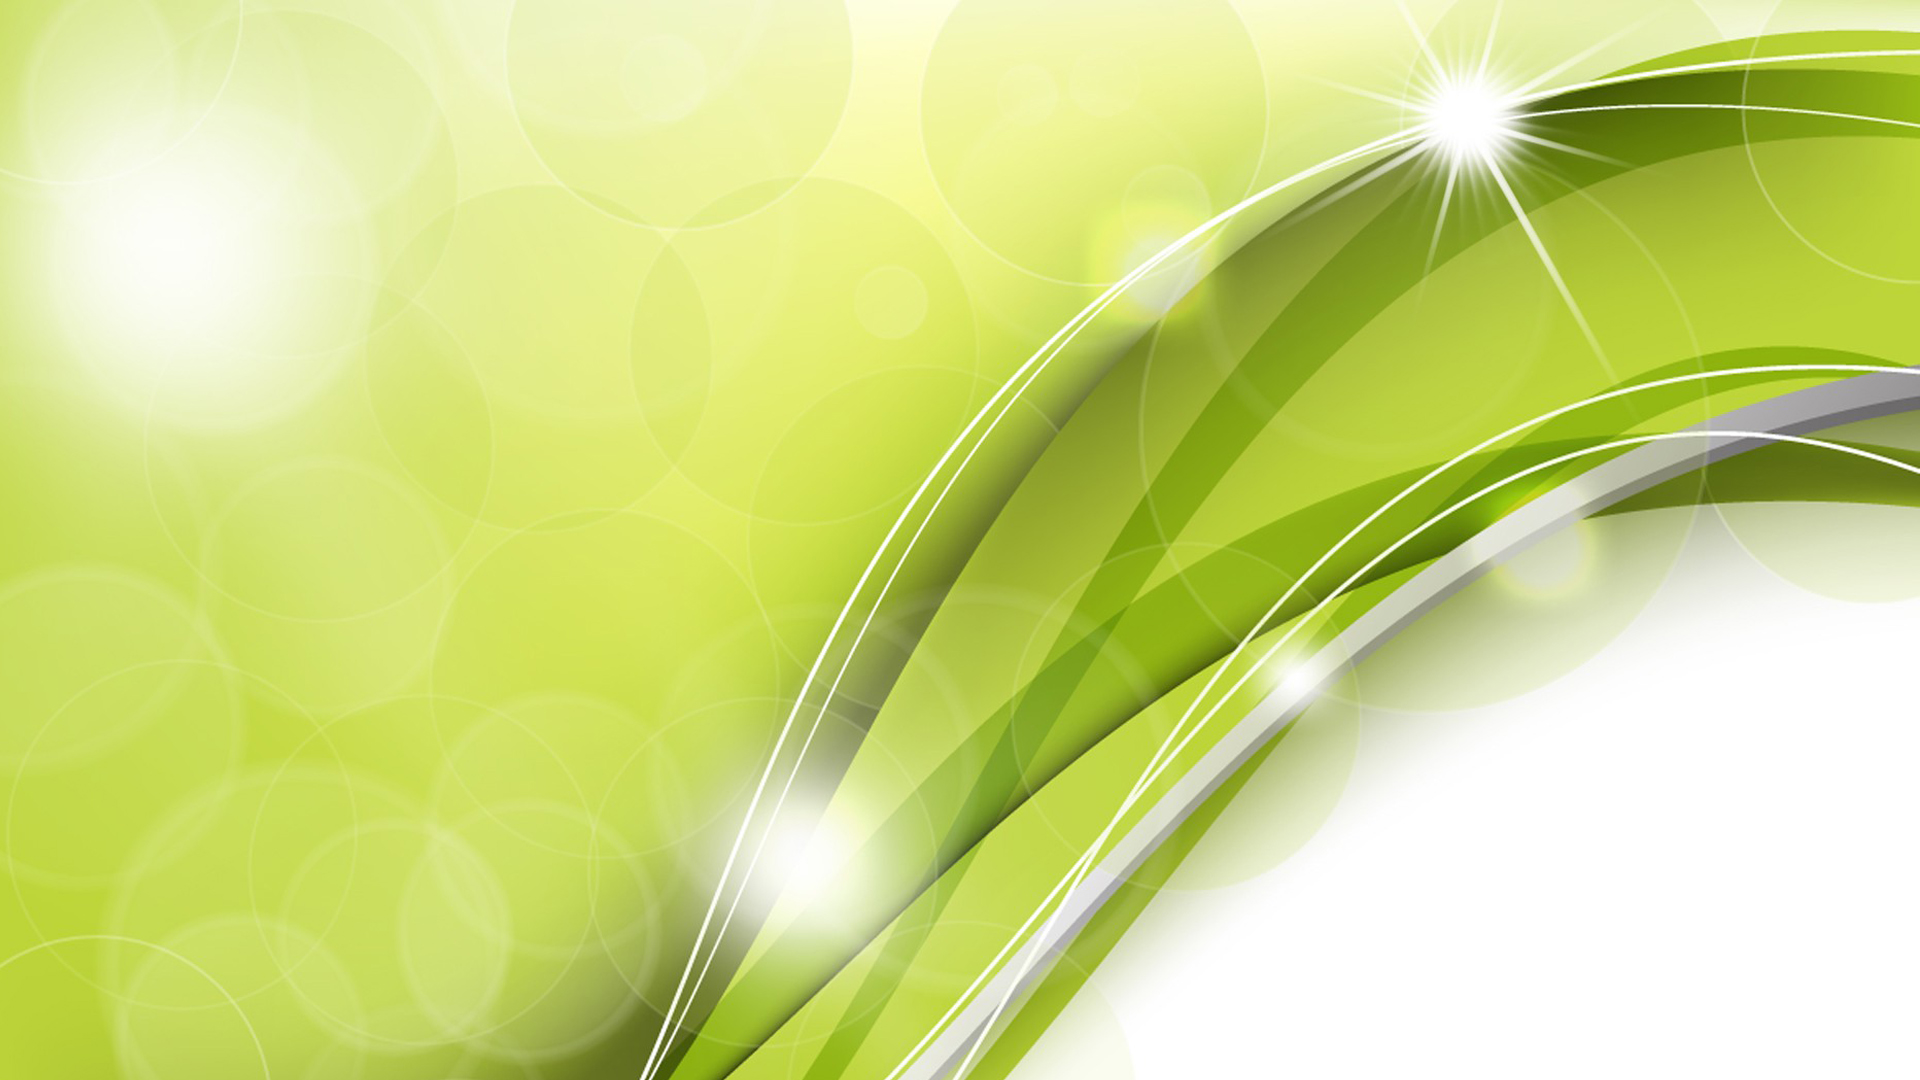 Yellow And Green Wallpapers: 48 High Definition Yellow Wallpapers/Backgrounds For Free